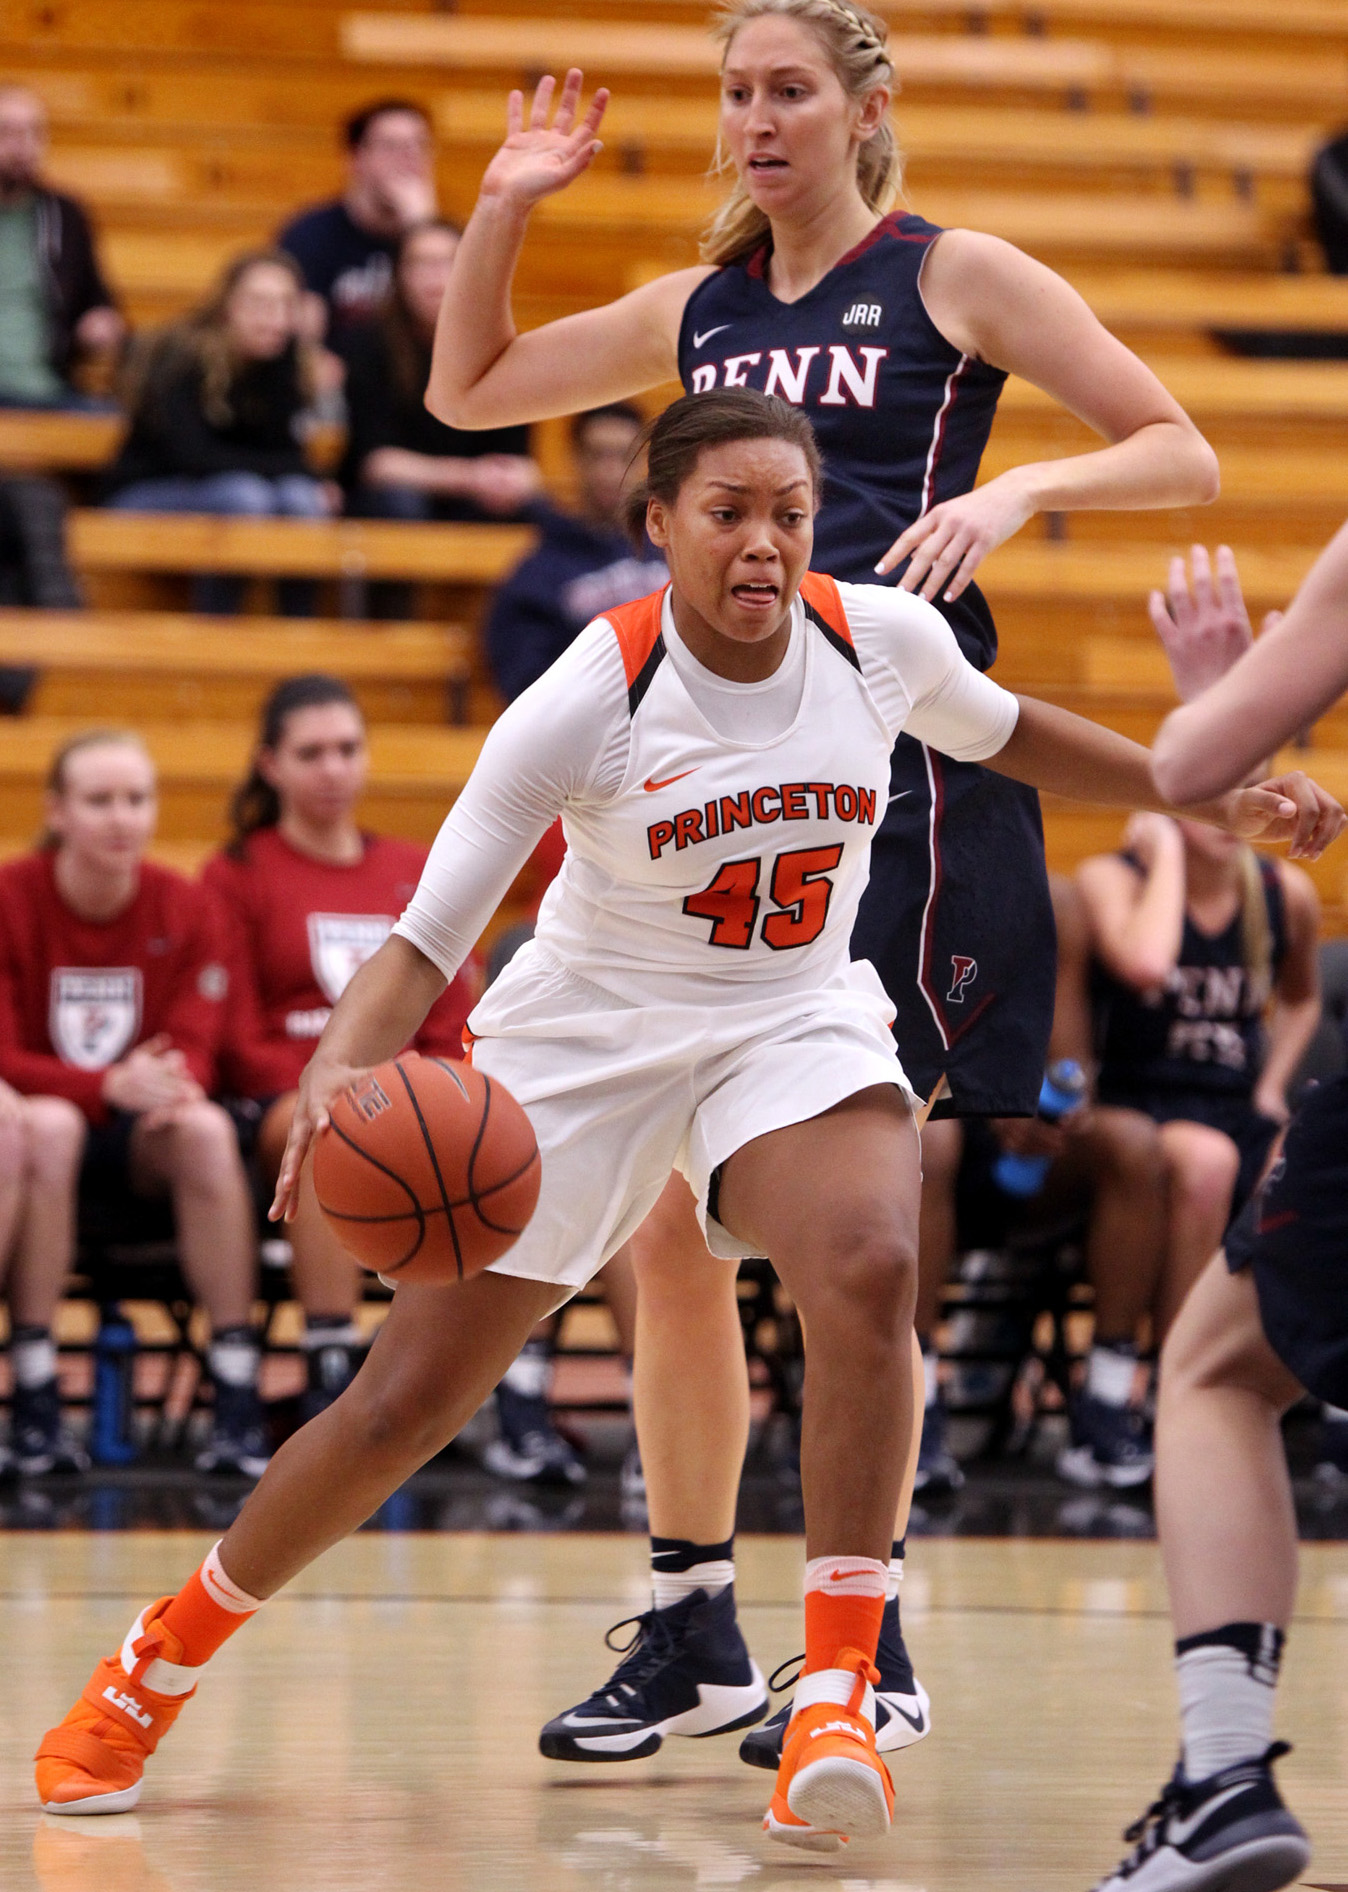 1e66a0de175 DRIVEN TO SUCCEED: Princeton University women's basketball player Leslie  Robinson drives to the hoop in a game last season. Senior star and  co-captain ...